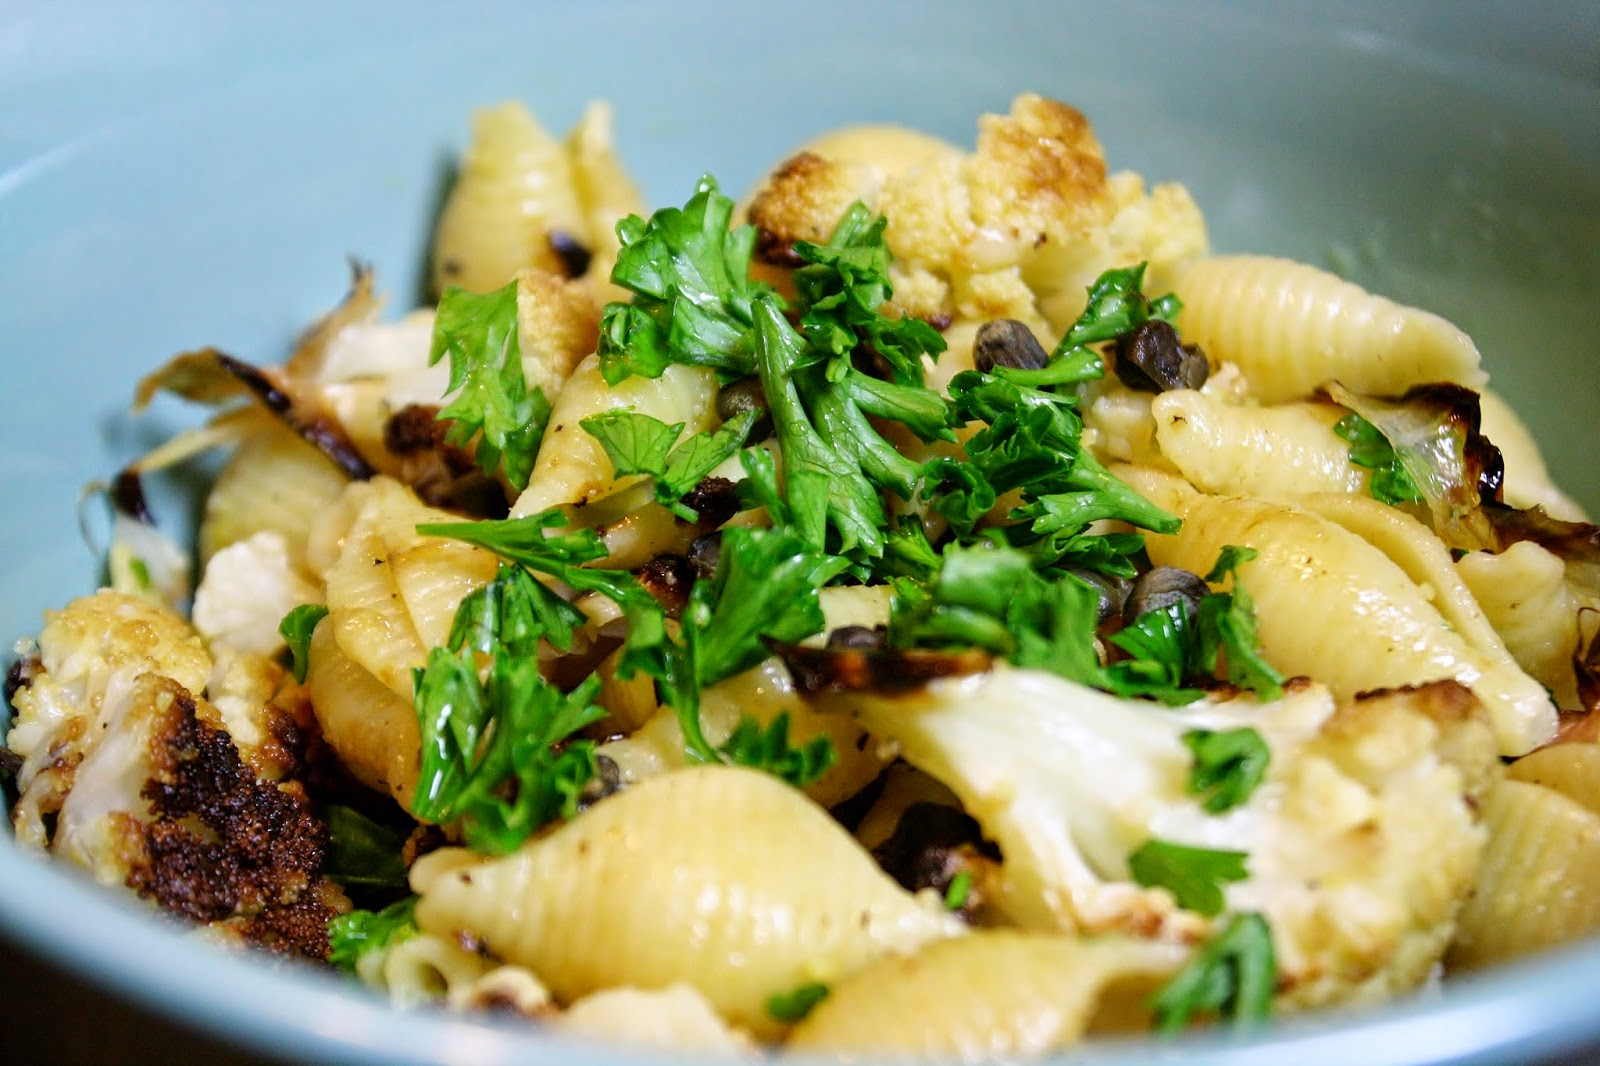 http://eatprayjuice.blogspot.com/2014/10/pasta-with-roasted-cauliflower-and.html